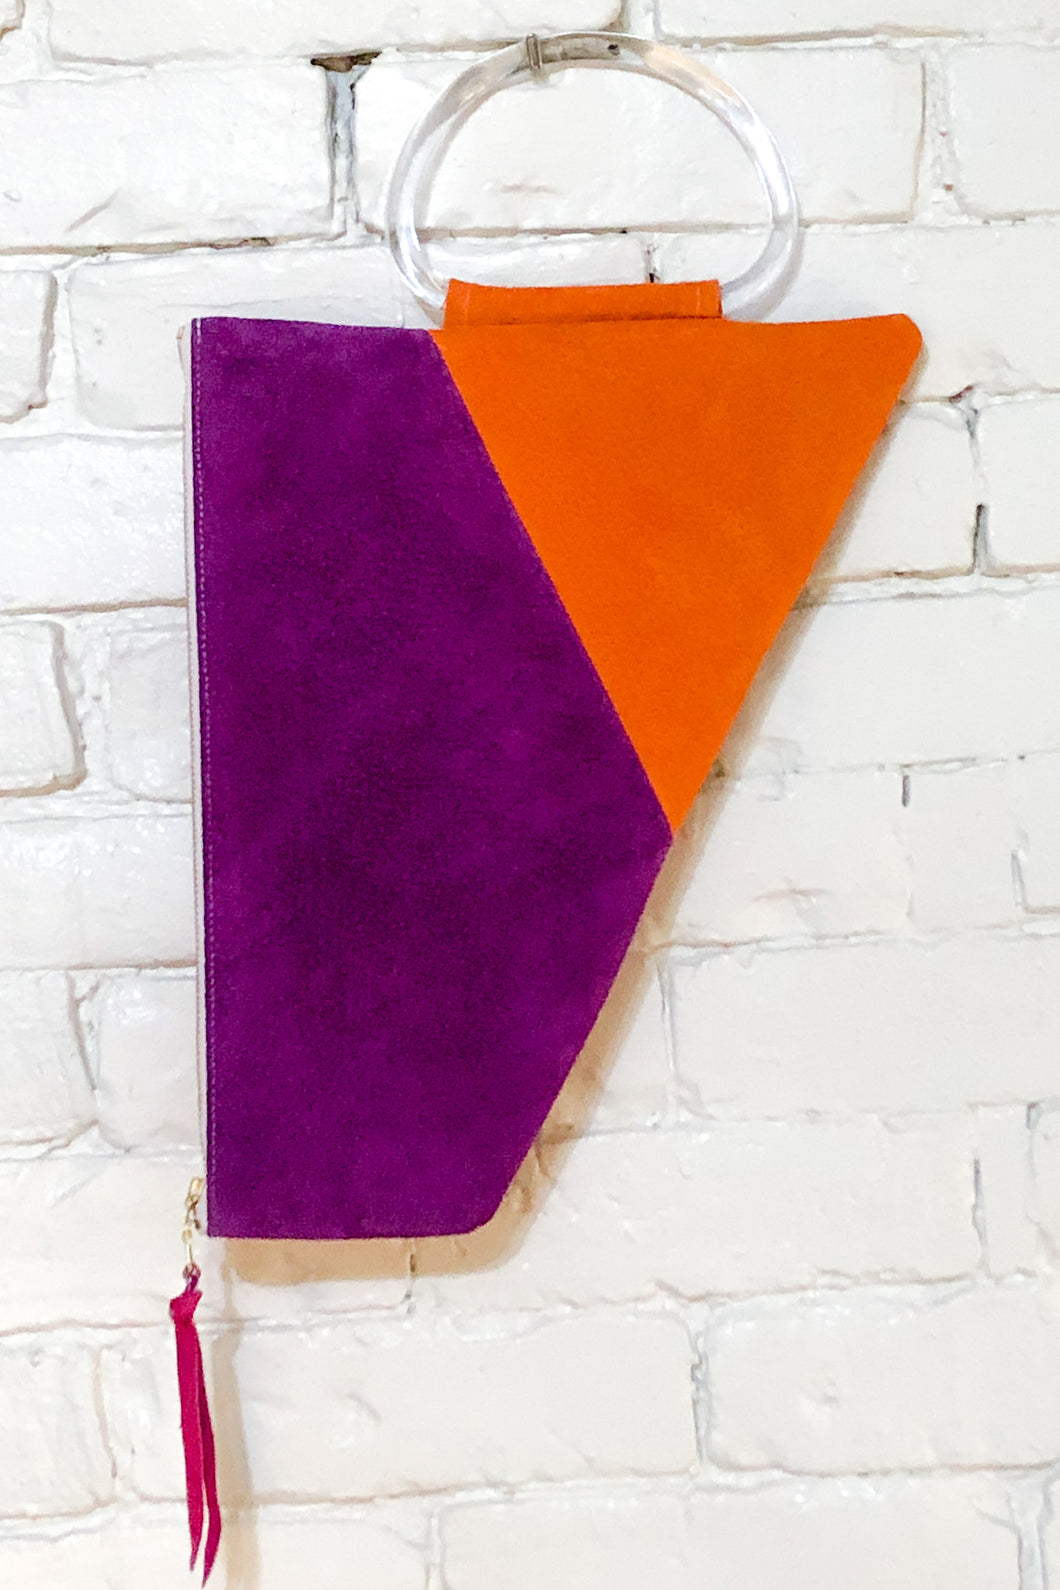 The Trapezoid (Apricot and Plum w/ Handle)